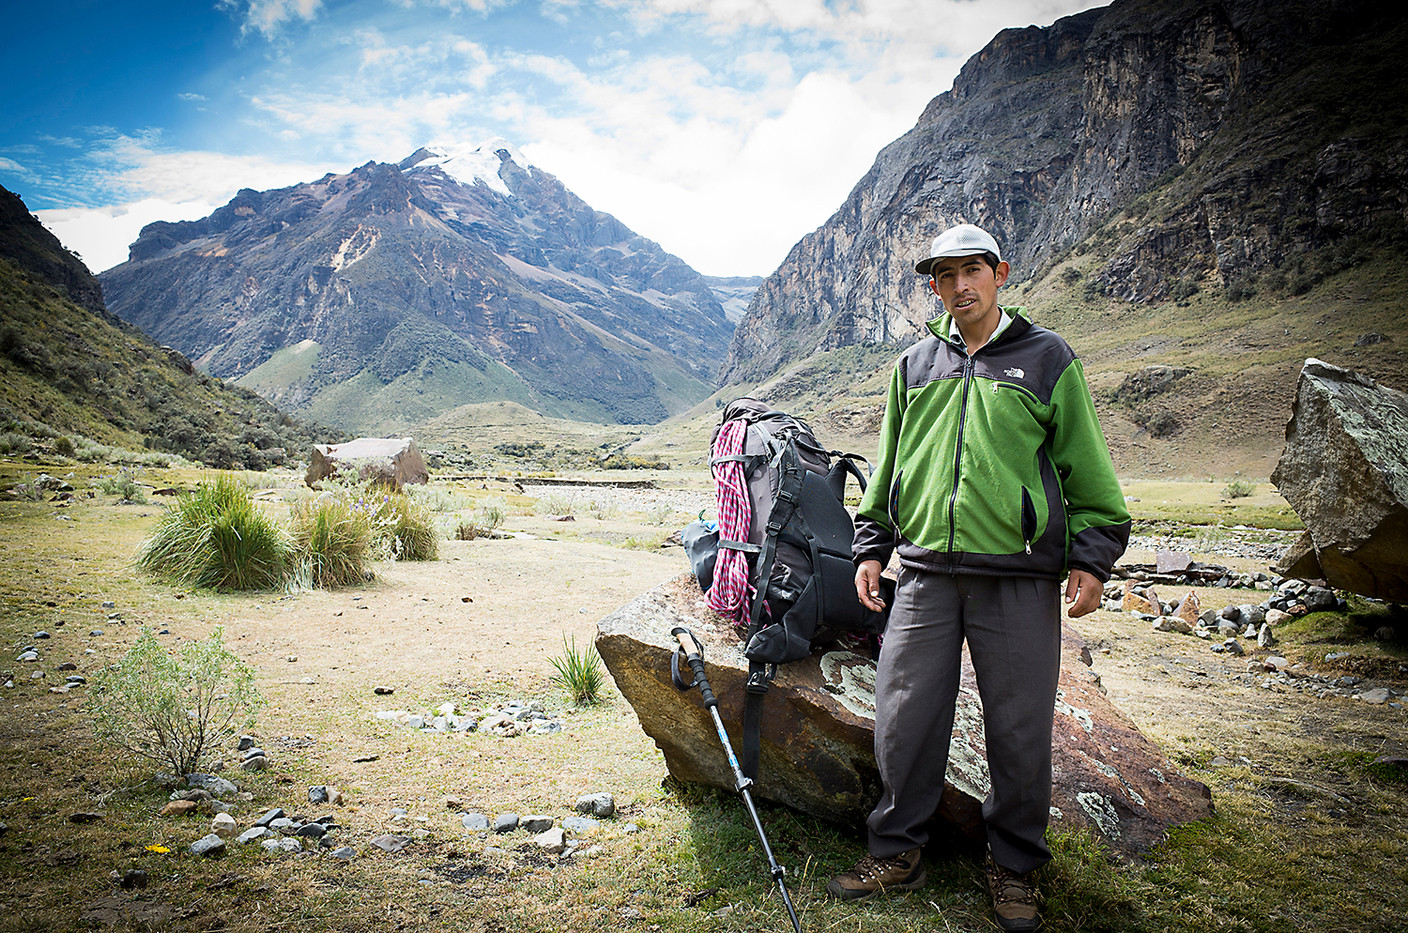 Simeón is a porter from Llupa, a small village outside of Huaraz. He proudly states that he has worked with Brad Johnson, the American climber and author of the definitive English guide to climbing in the Cordillera Blanca.